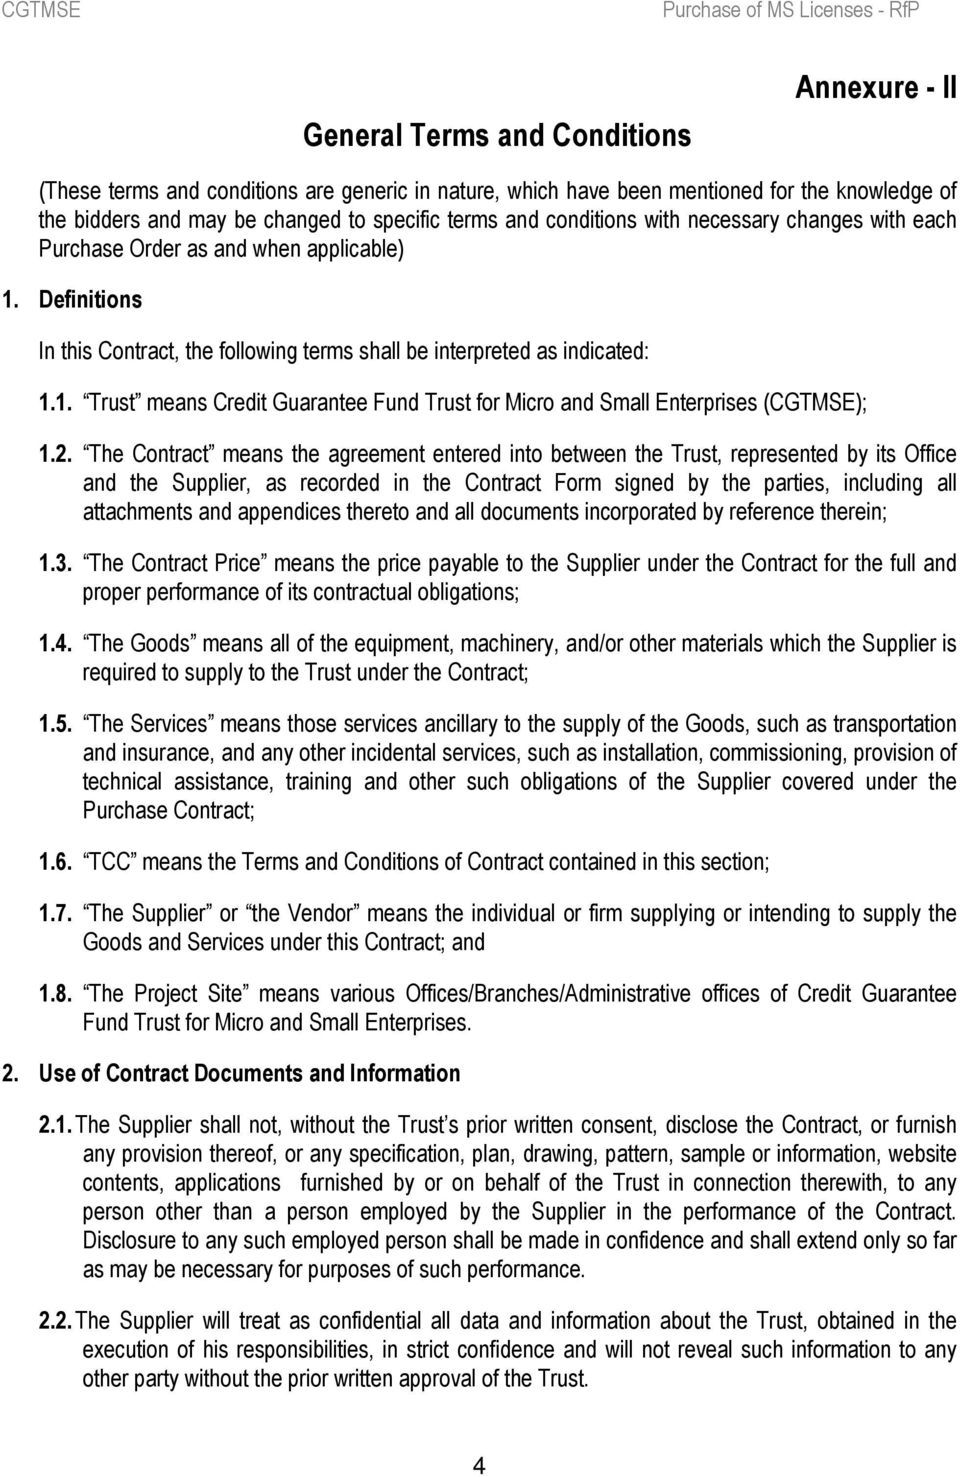 2. The Contract means the agreement entered into between the Trust, represented by its Office and the Supplier, as recorded in the Contract Form signed by the parties, including all attachments and